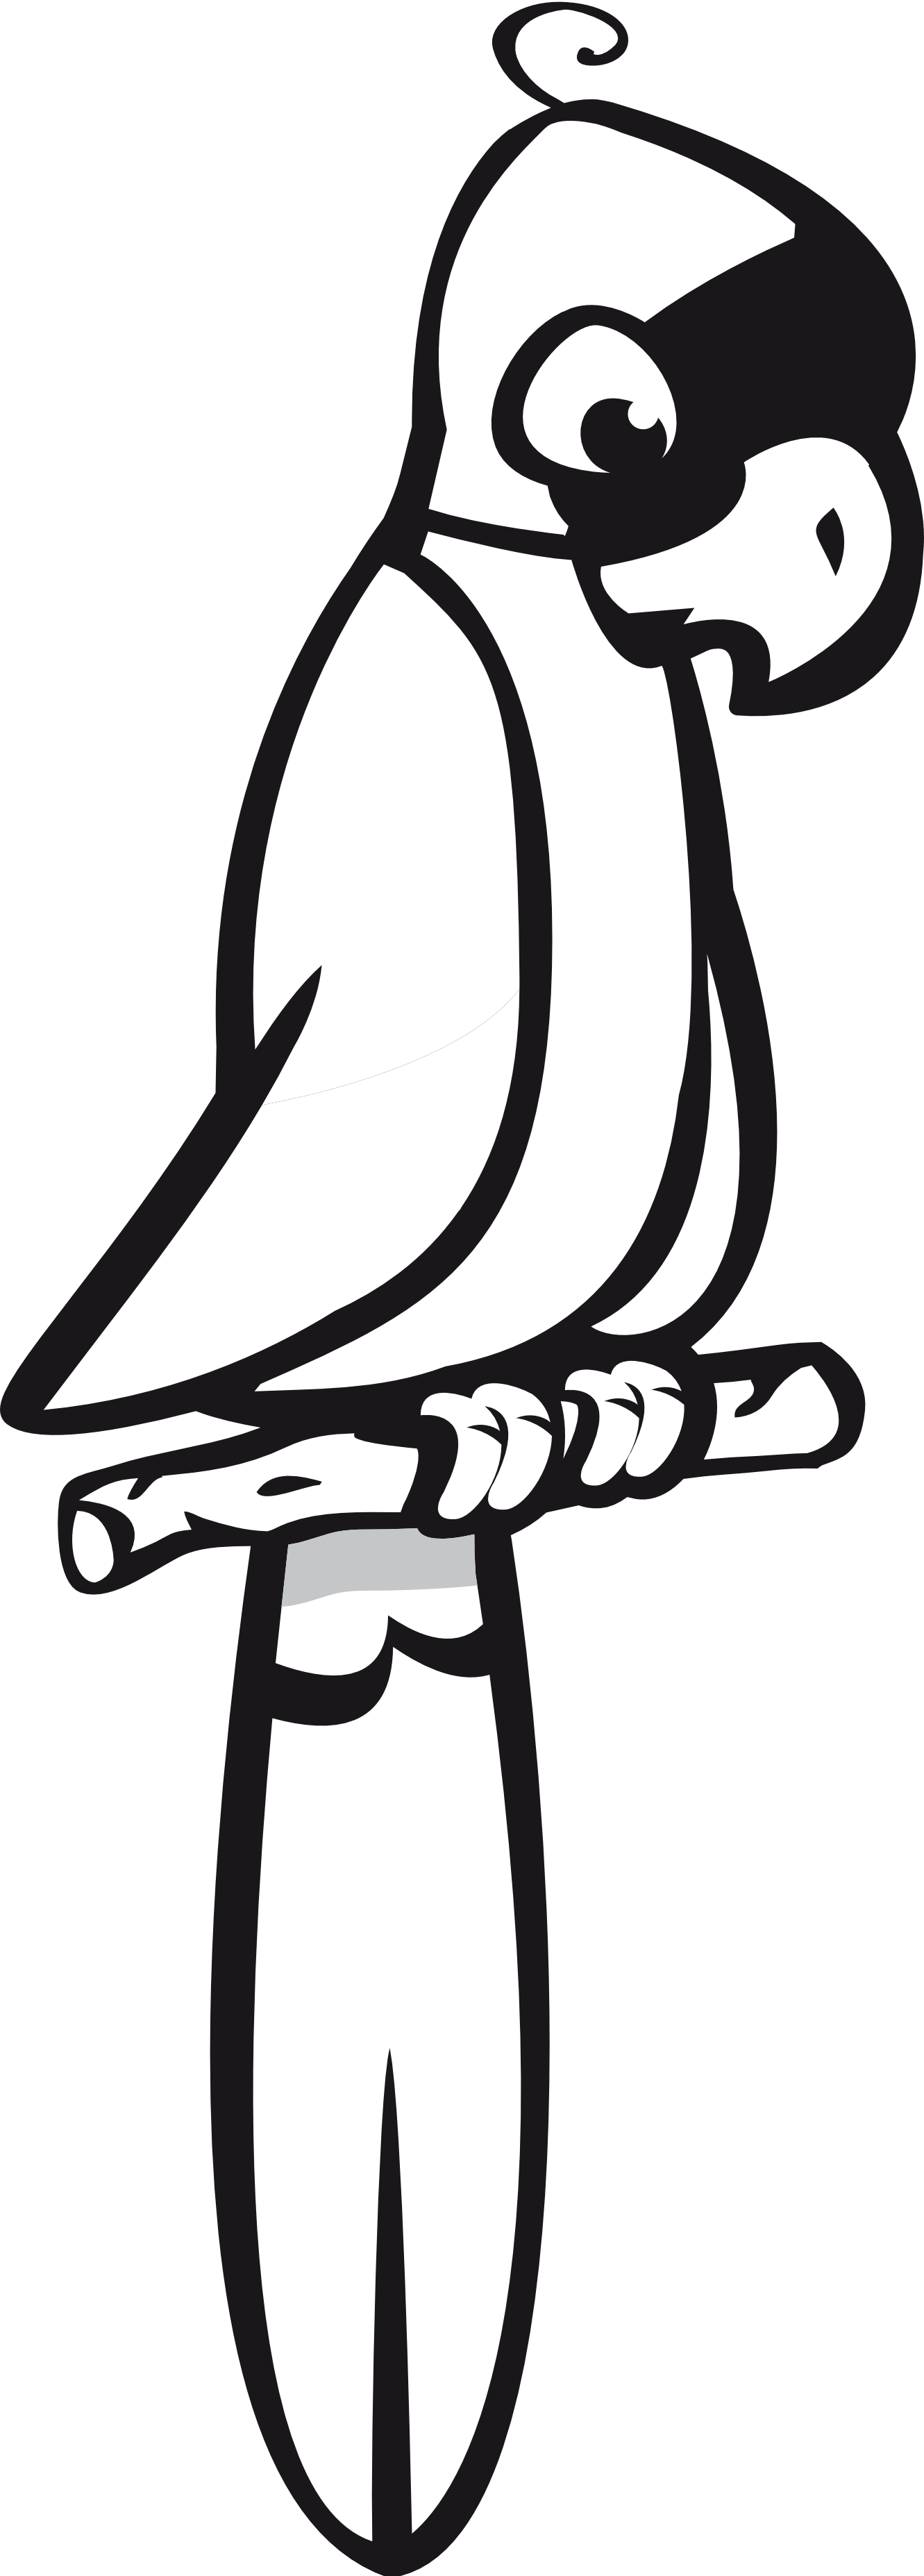 Parrot Clipart Black And White Clipart Panda